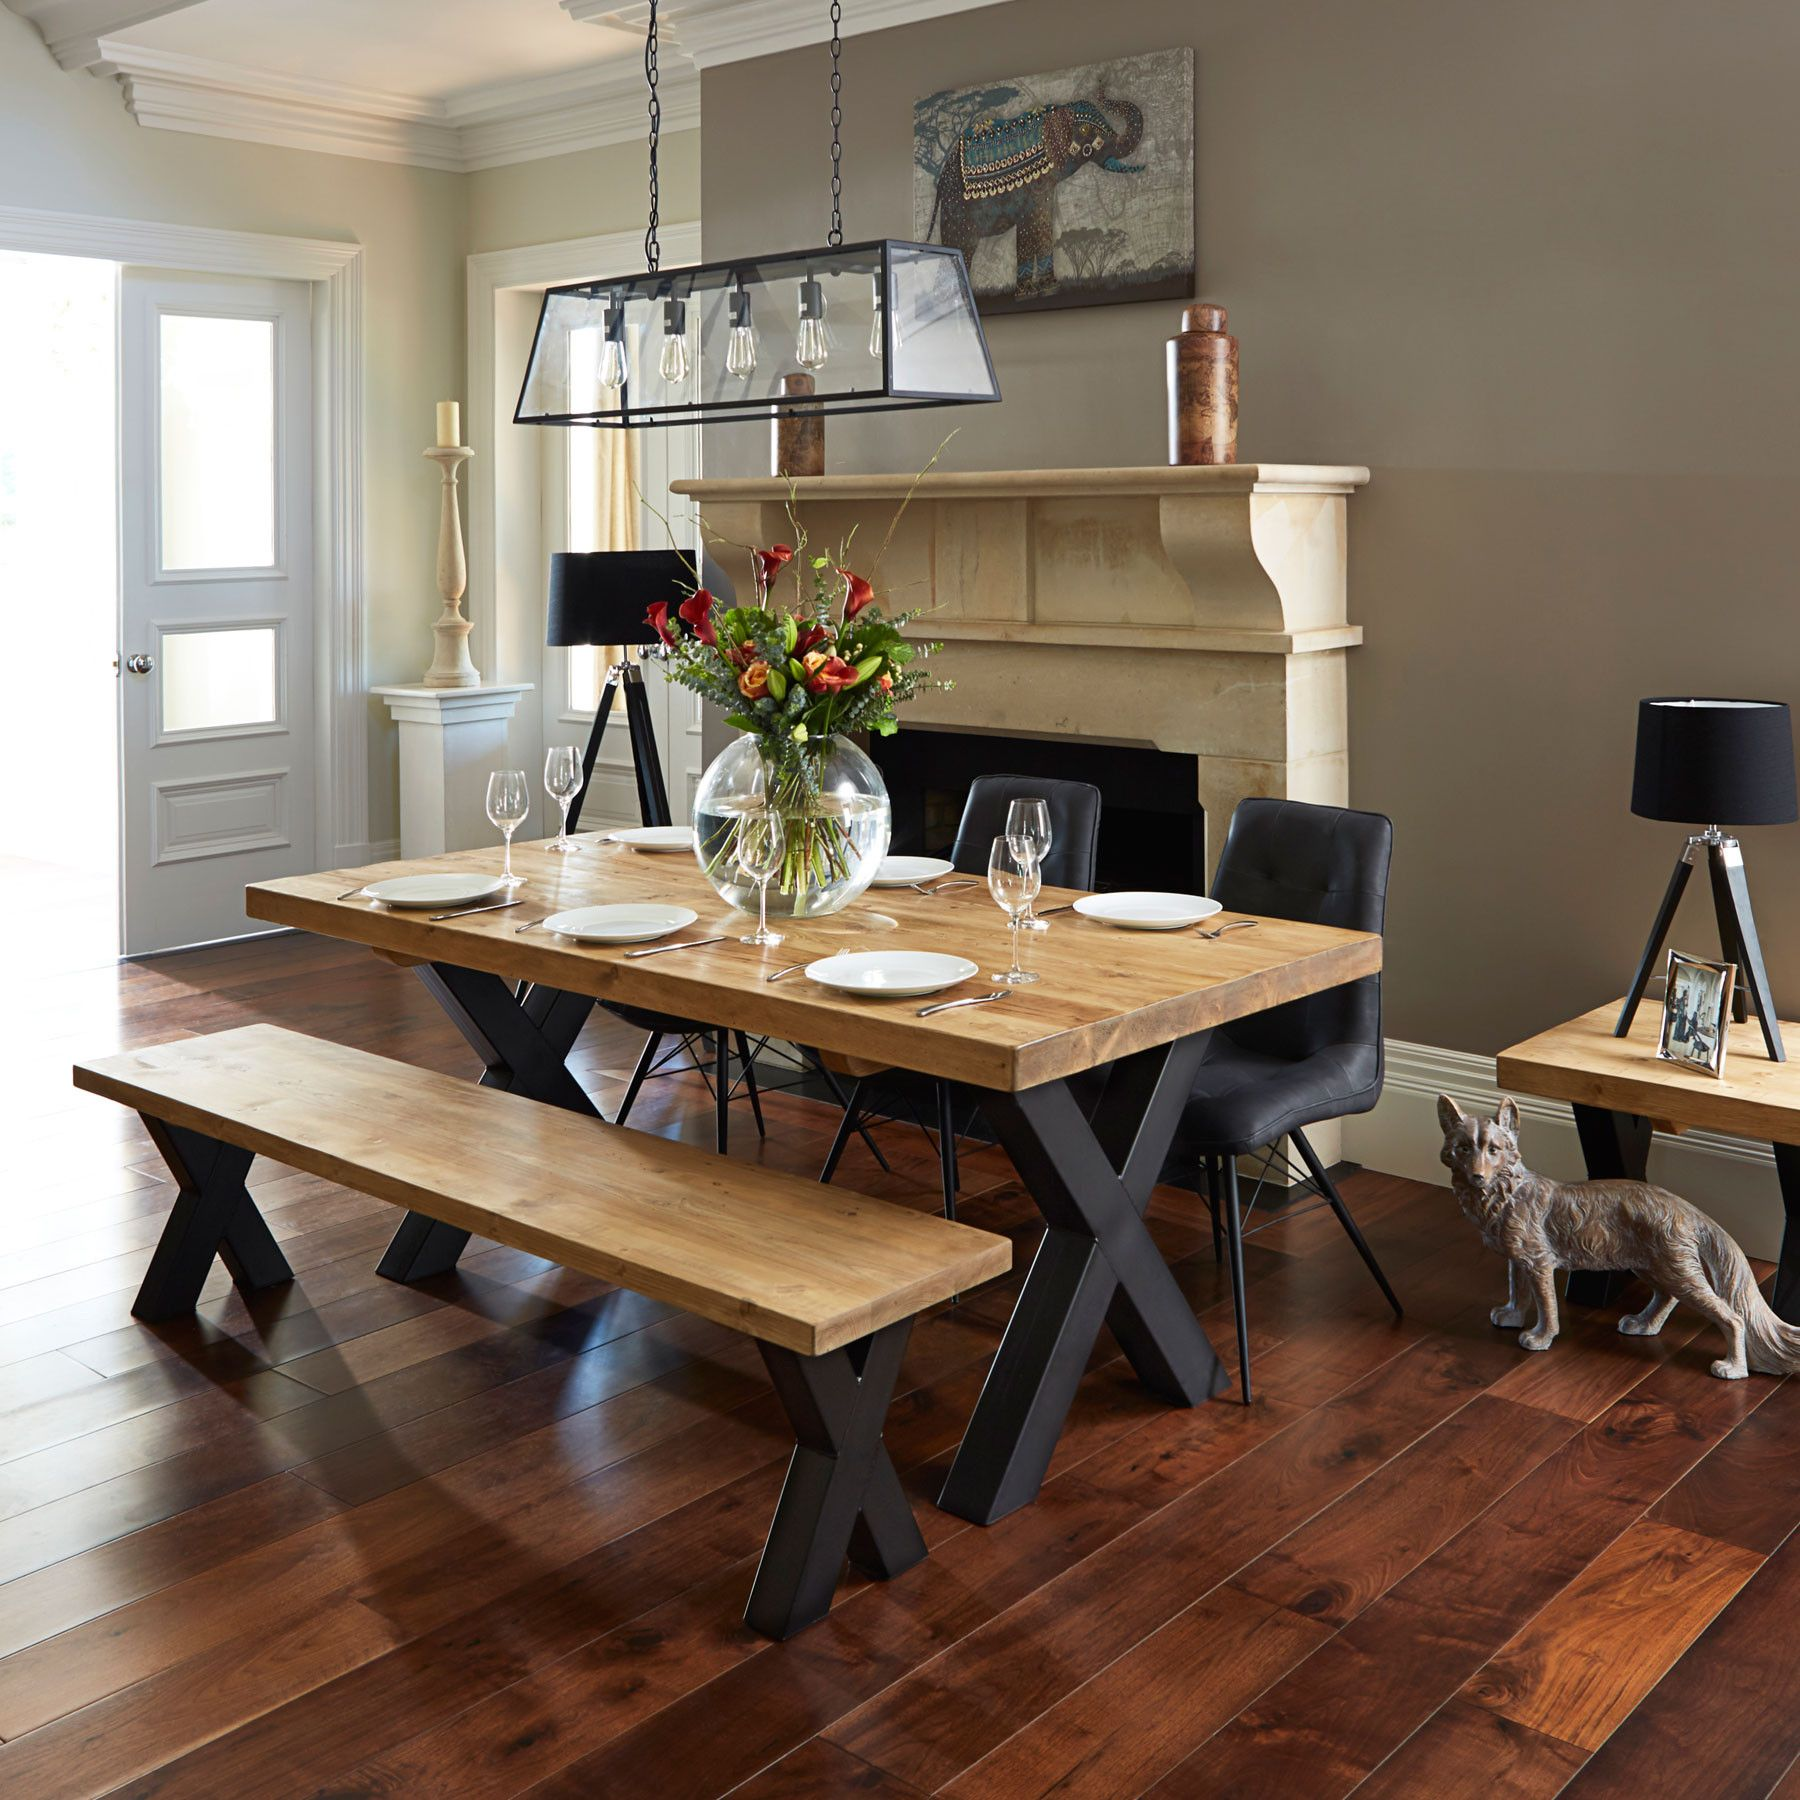 Timber Dining Tables And Chairs Ragana Reclaimed Timber Dining Table With Bench And 3 Dining